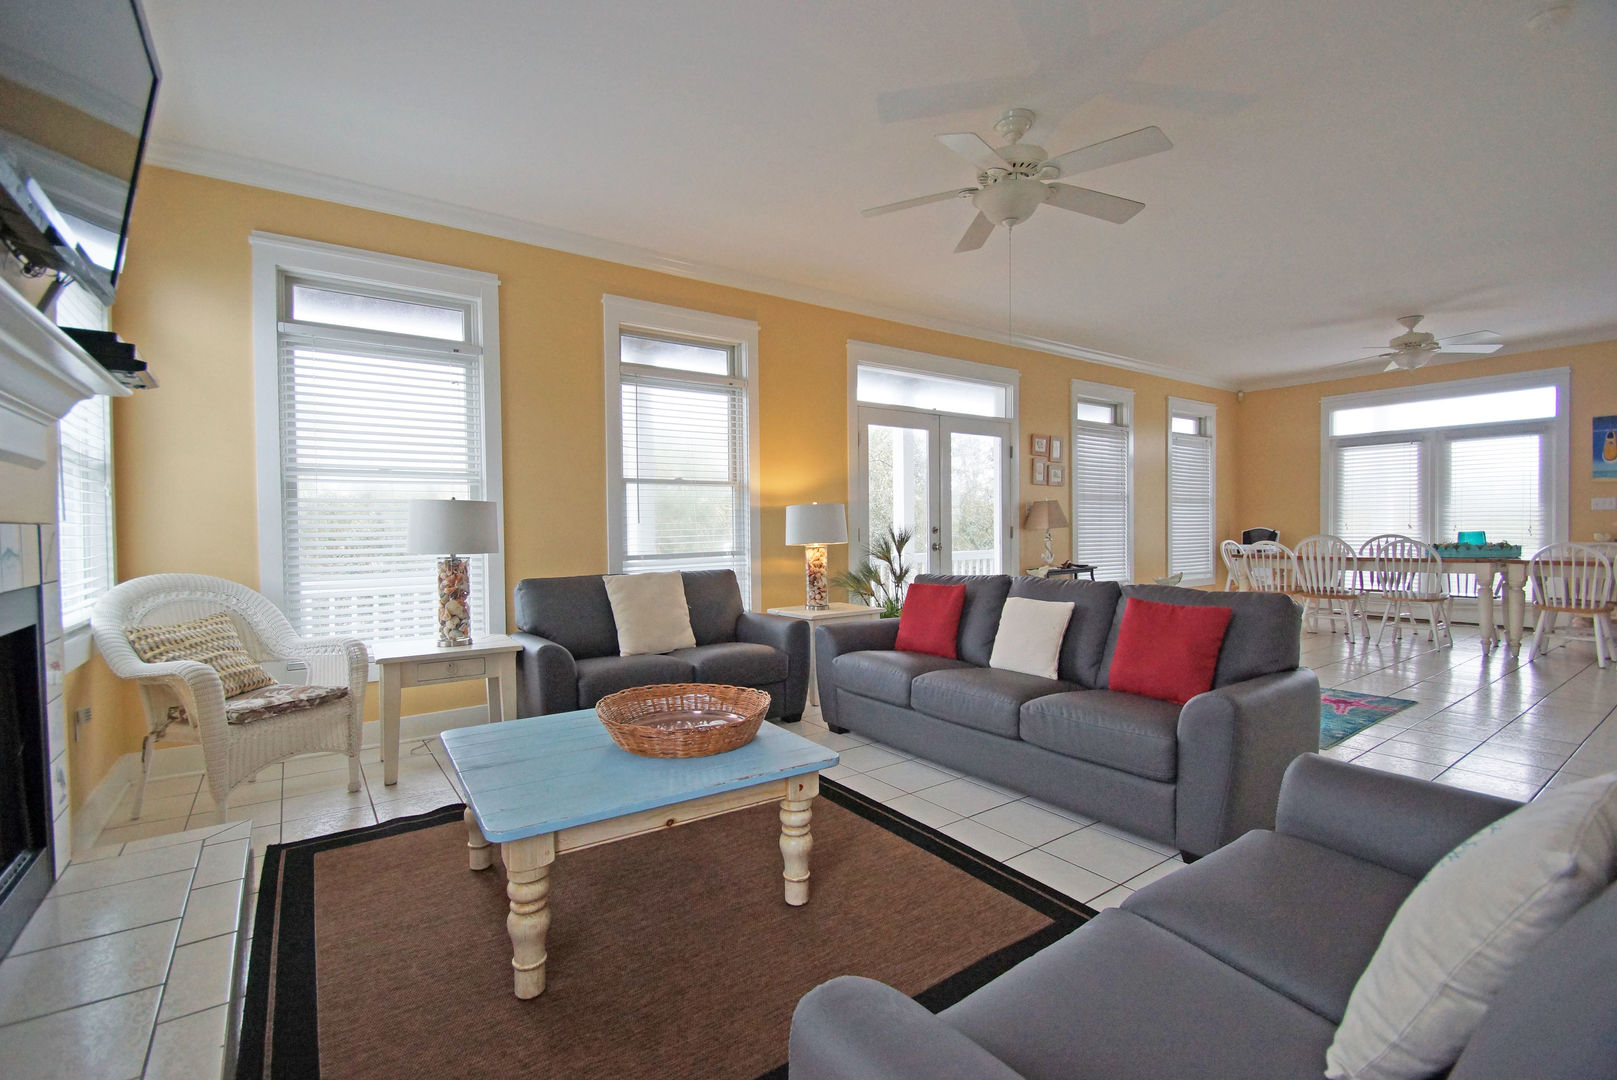 Sofas, Coffee Table, Fireplace, TV, Ceiling Fan, Dining Set, and Windows